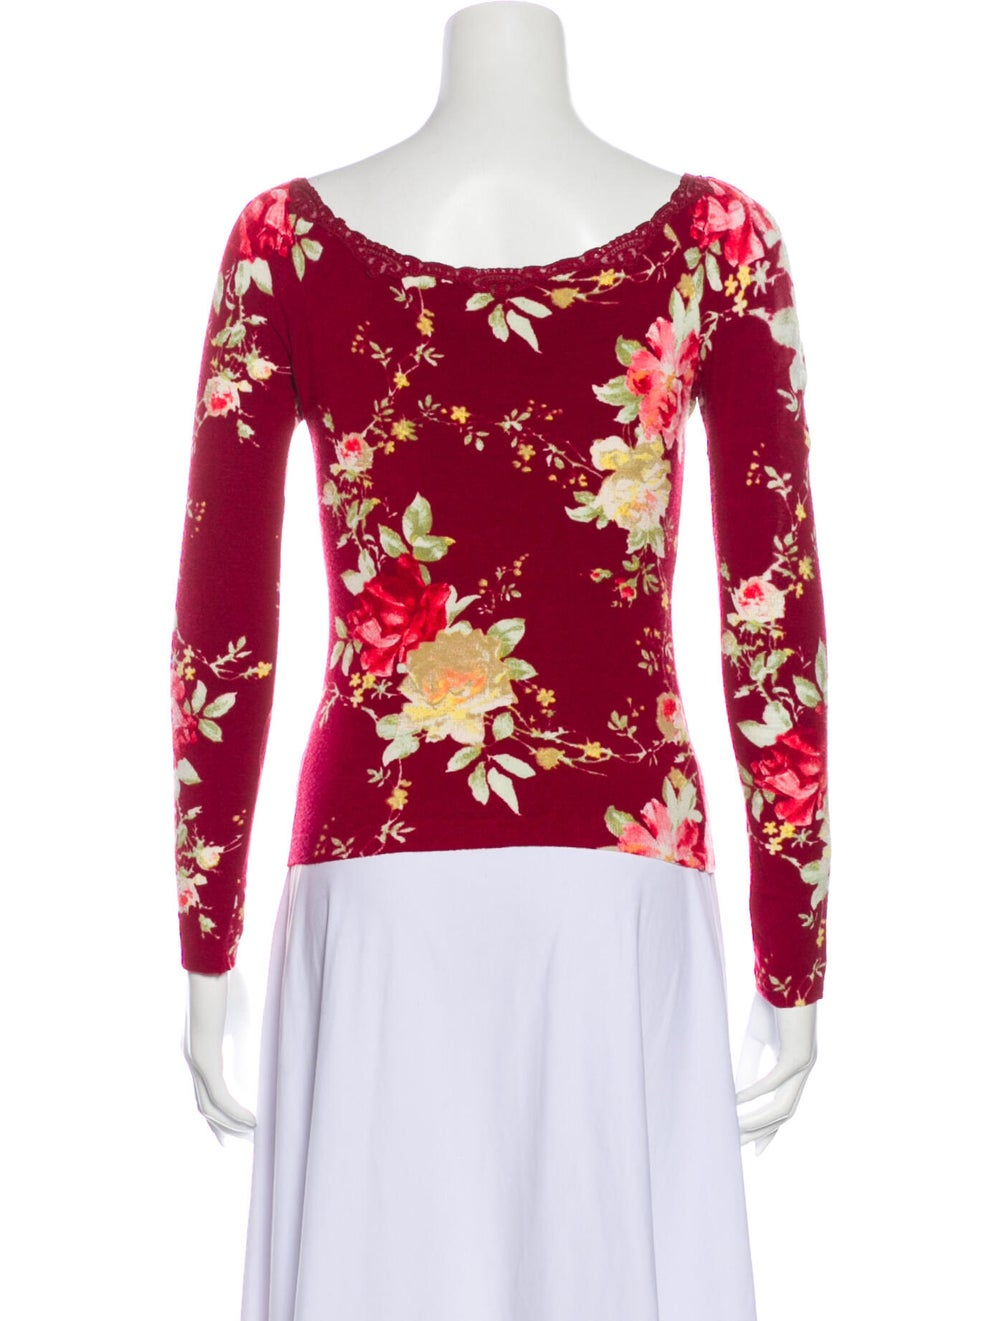 Blumarine Floral Print Scoop Neck Top Red - image 3